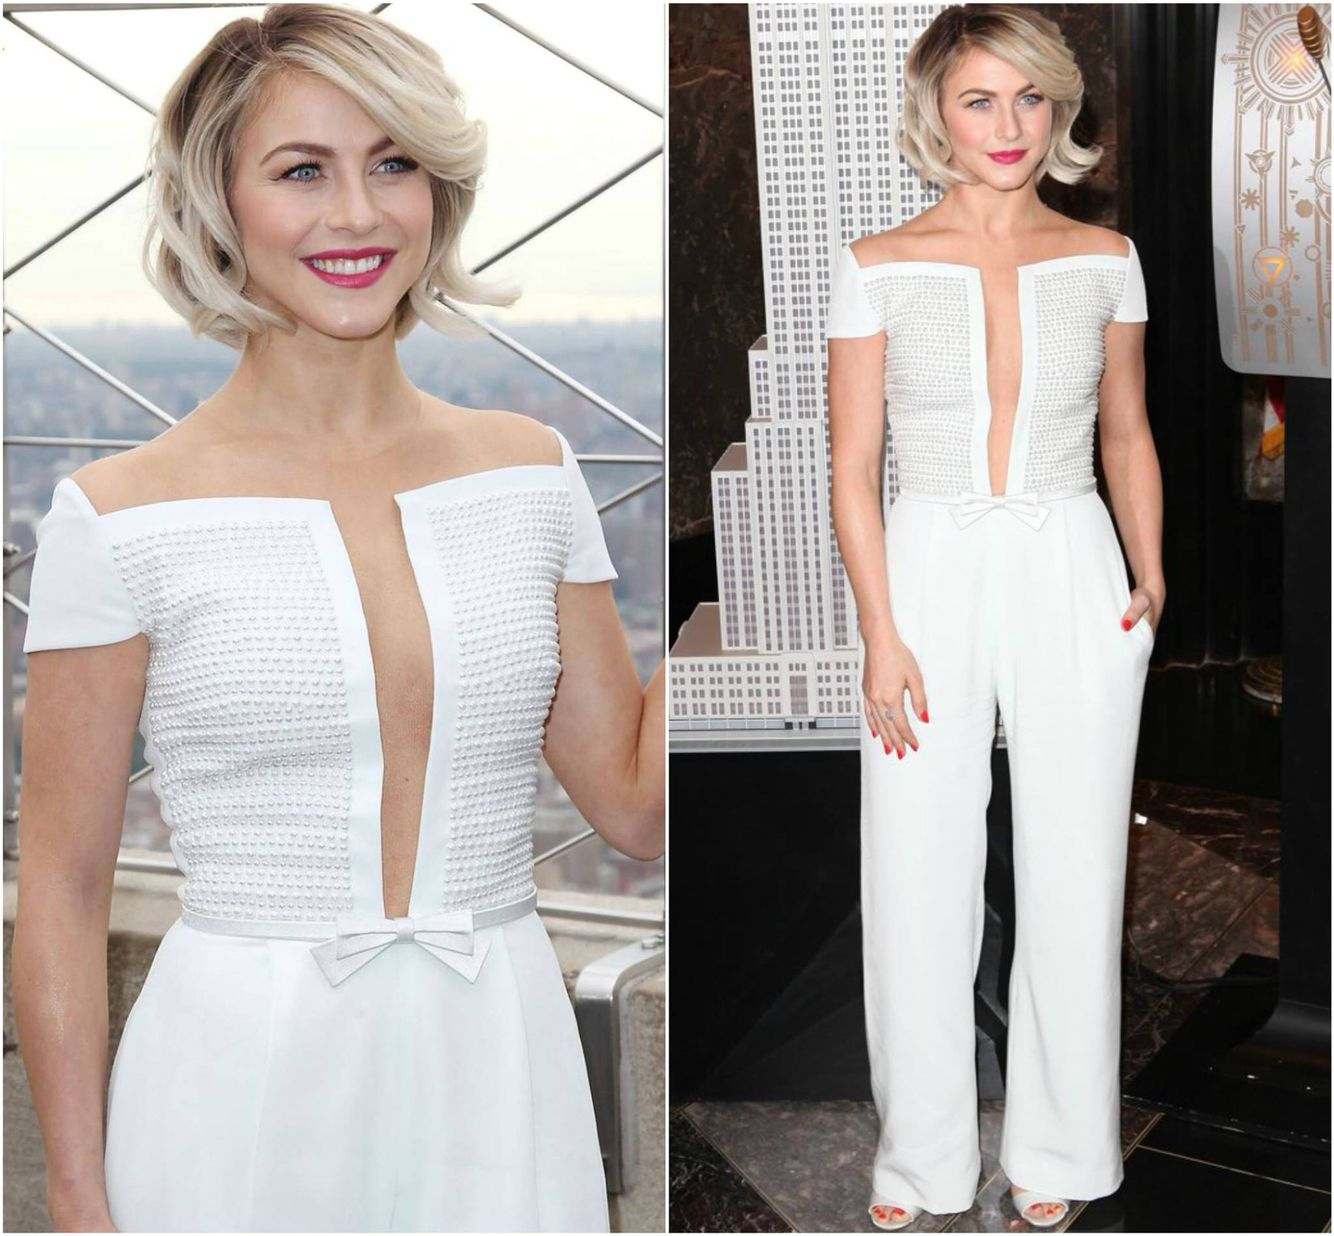 "Julianne Hough looked fabulous in GEORGES HOBEIKA as she lit the Empire State Building pink in honor of Plan International USA's ""International Day of the Girl."" Hough selected a white, cap sleeve jumpsuit featuring a pearl embroidered, illusion split-bust top from Georges Hobeika's SS 2014 Couture collection. #GeorgesHobeika #JulianneHough #couture #hautecouture #EmpireStateBuilding #event #white #jumpsuit #overall #pearls #embroidery #celebrity #hair #makeup #fashion #paris"